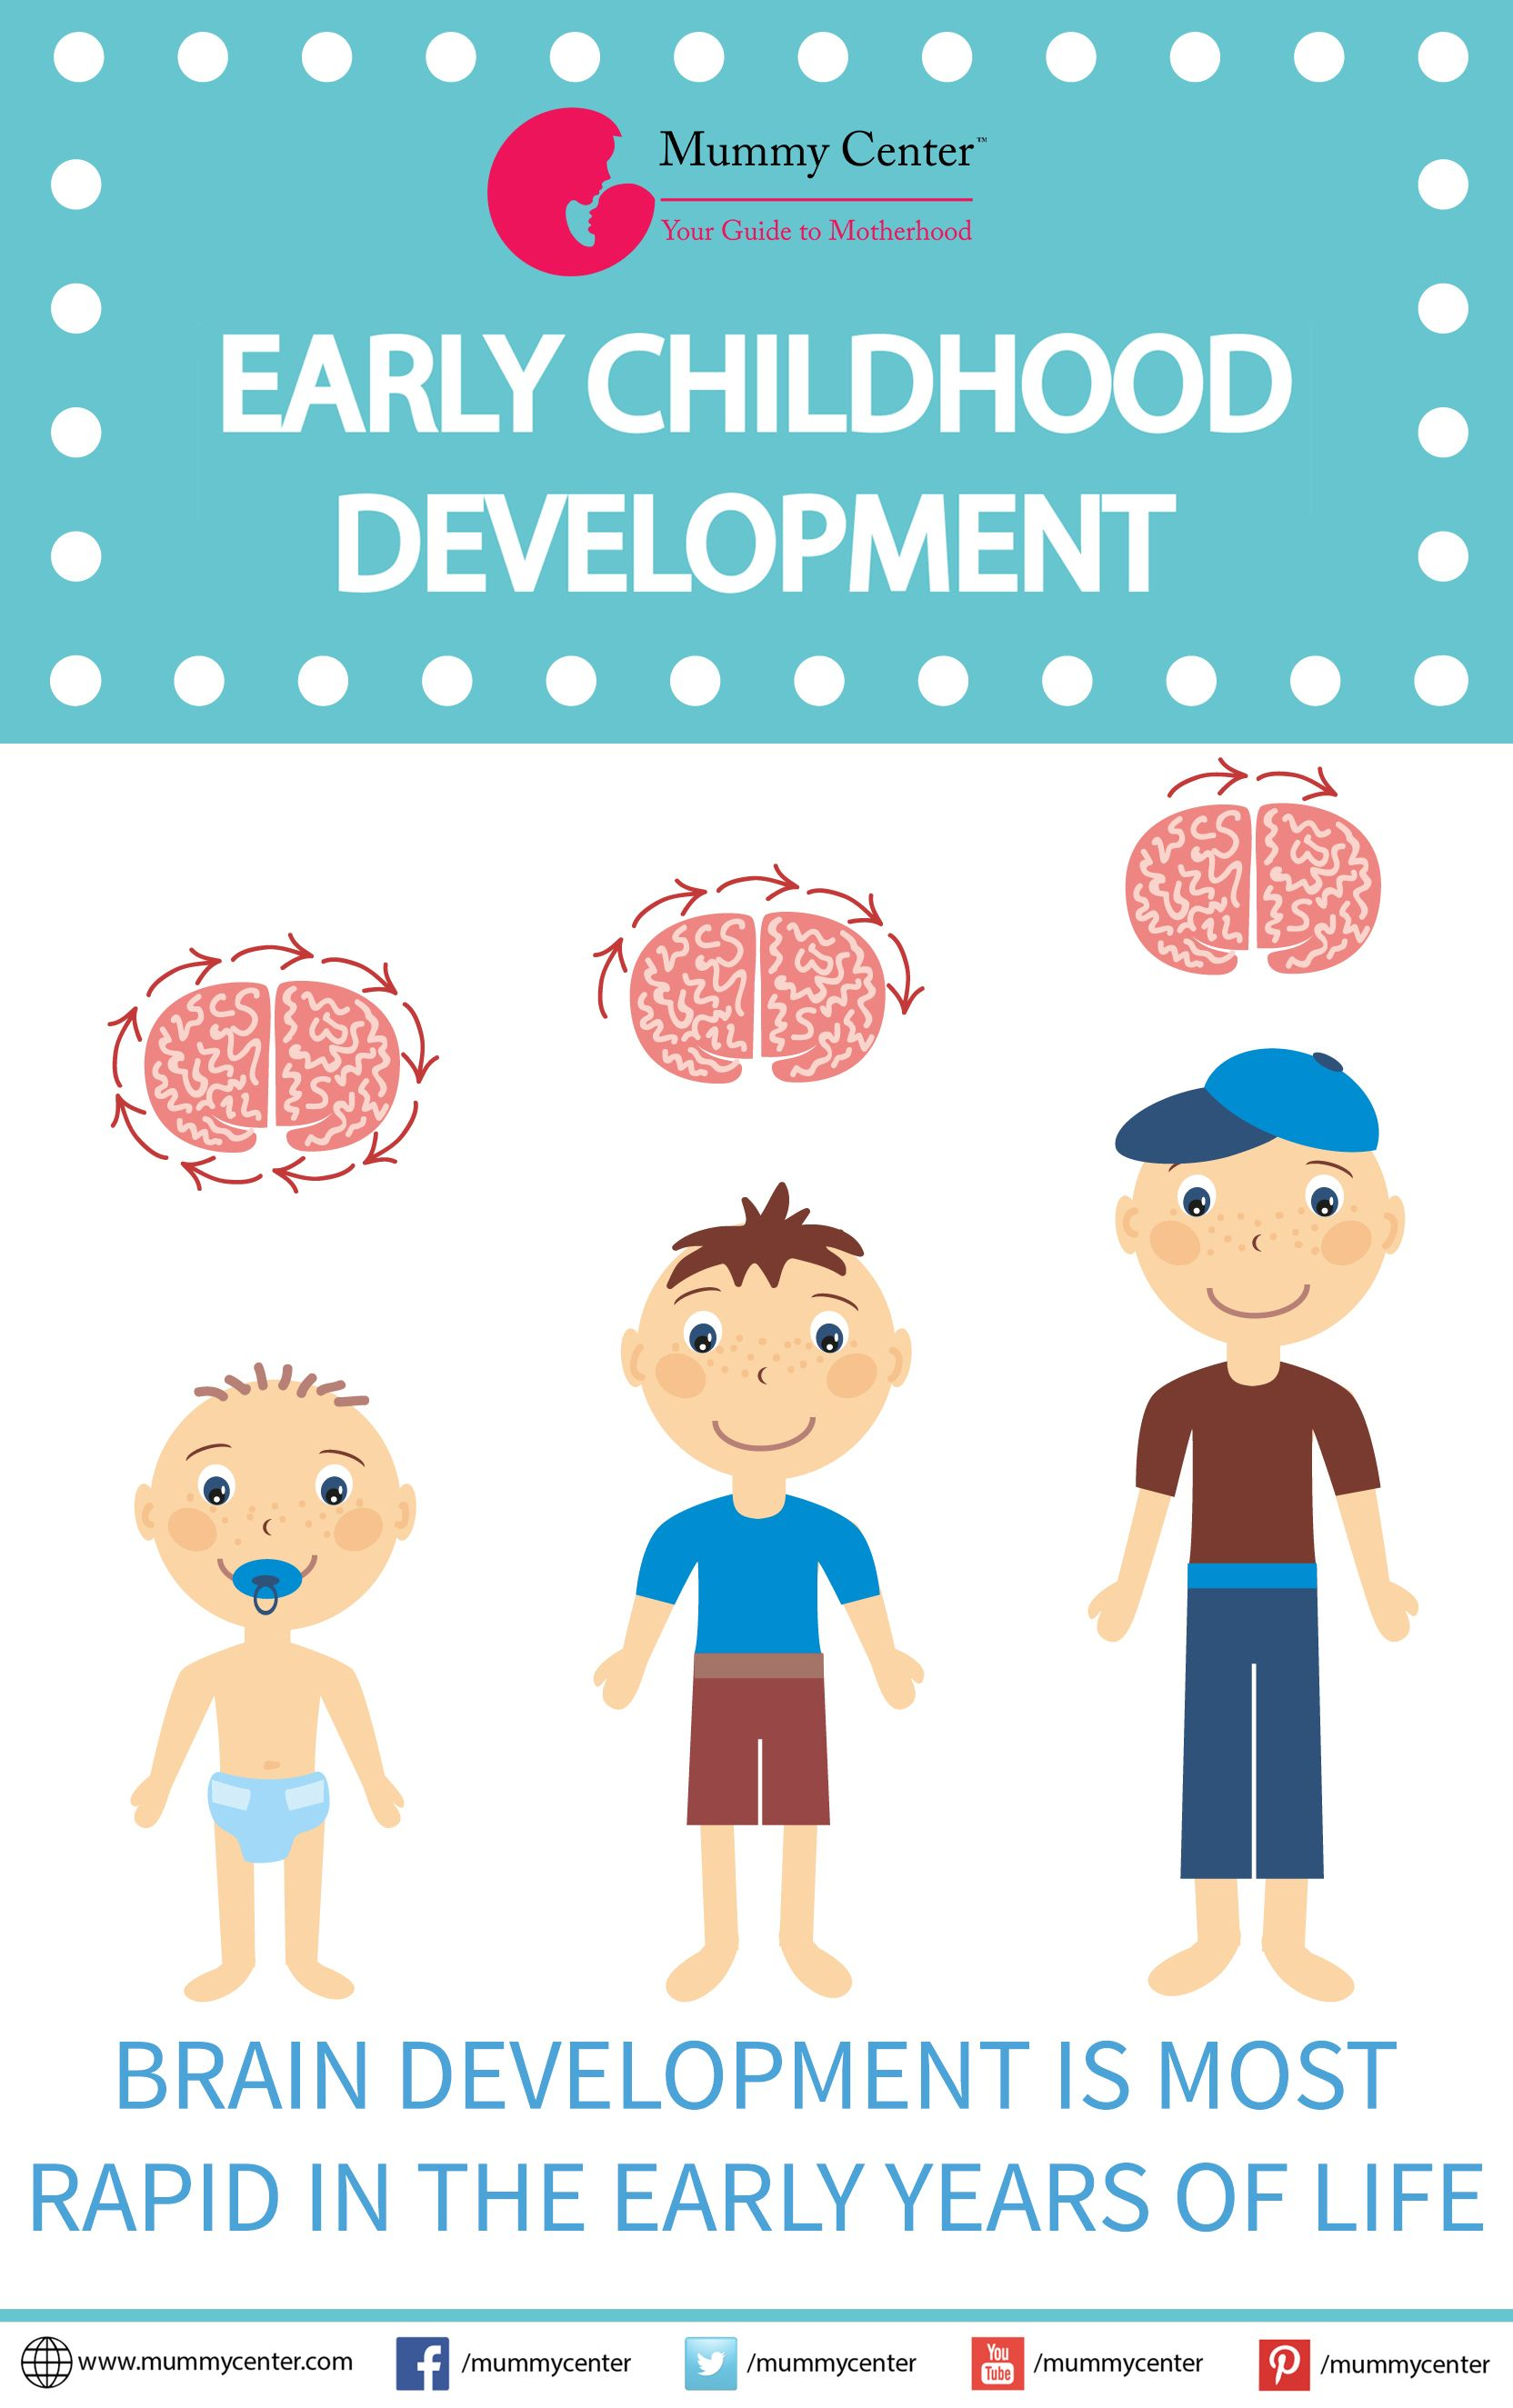 Toys and activities play a very important role in the cognitive